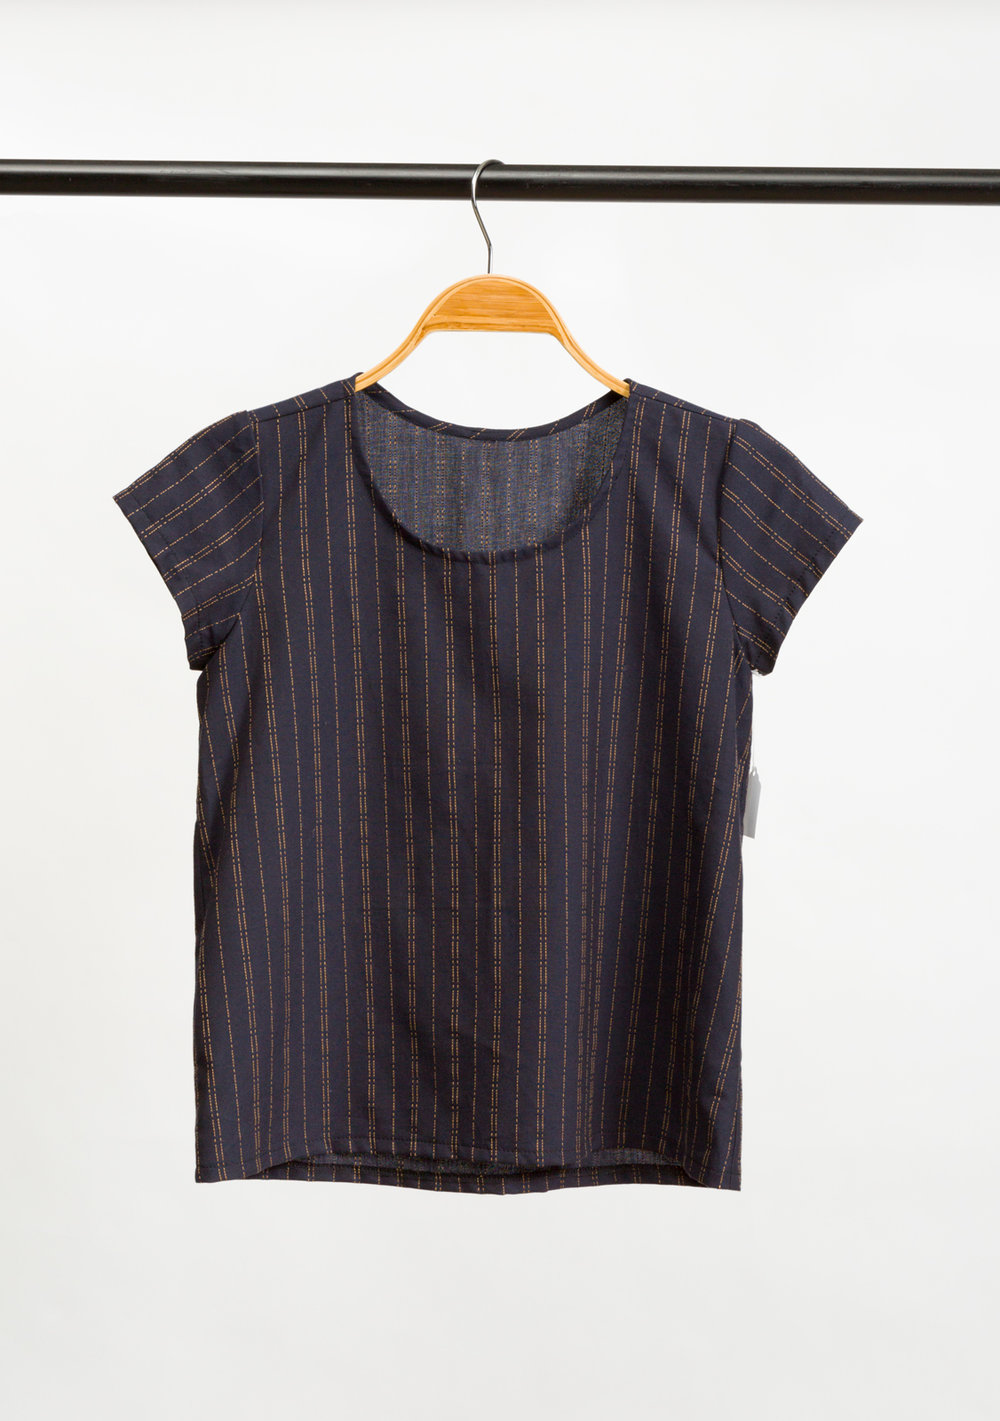 SCOUT WOVEN TEE   DESIGNED BY   GRAINLINE STUDIO,   MADE BY   PINK SUEDE SHOE,   FEATURING   INDIKON (16717-62)